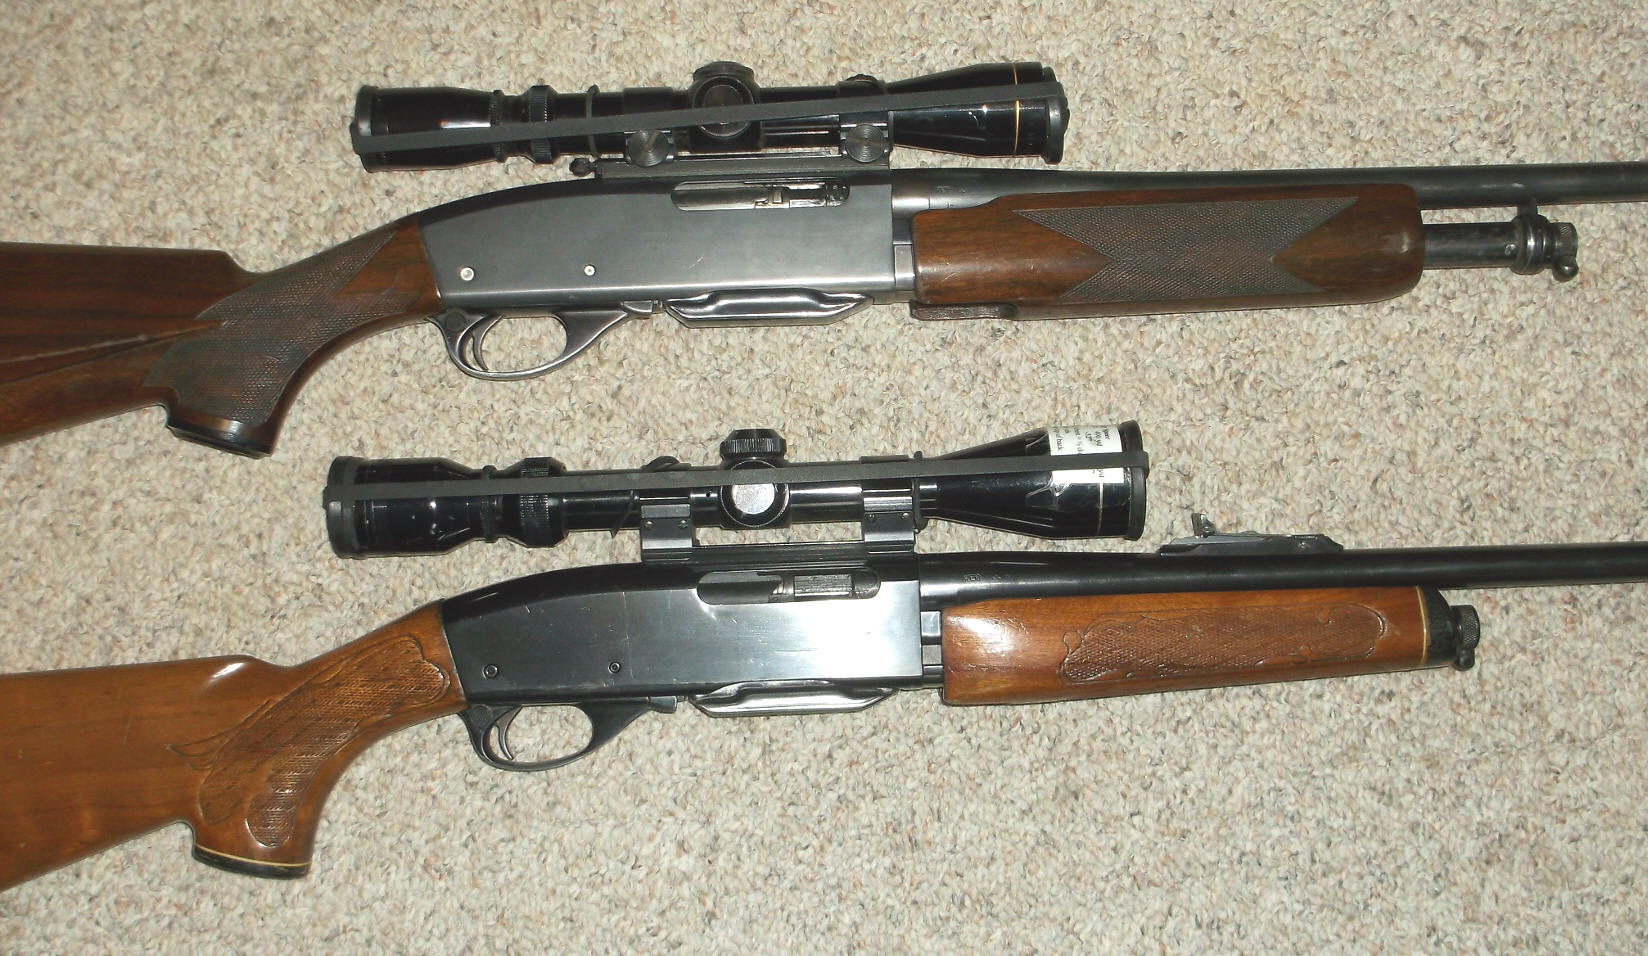 Remington 760 7600 pump rifle here on top showing the custom stocked older rifles old style forearm tube with the newer telescoping forearm style below the later pressed checkering sciox Choice Image